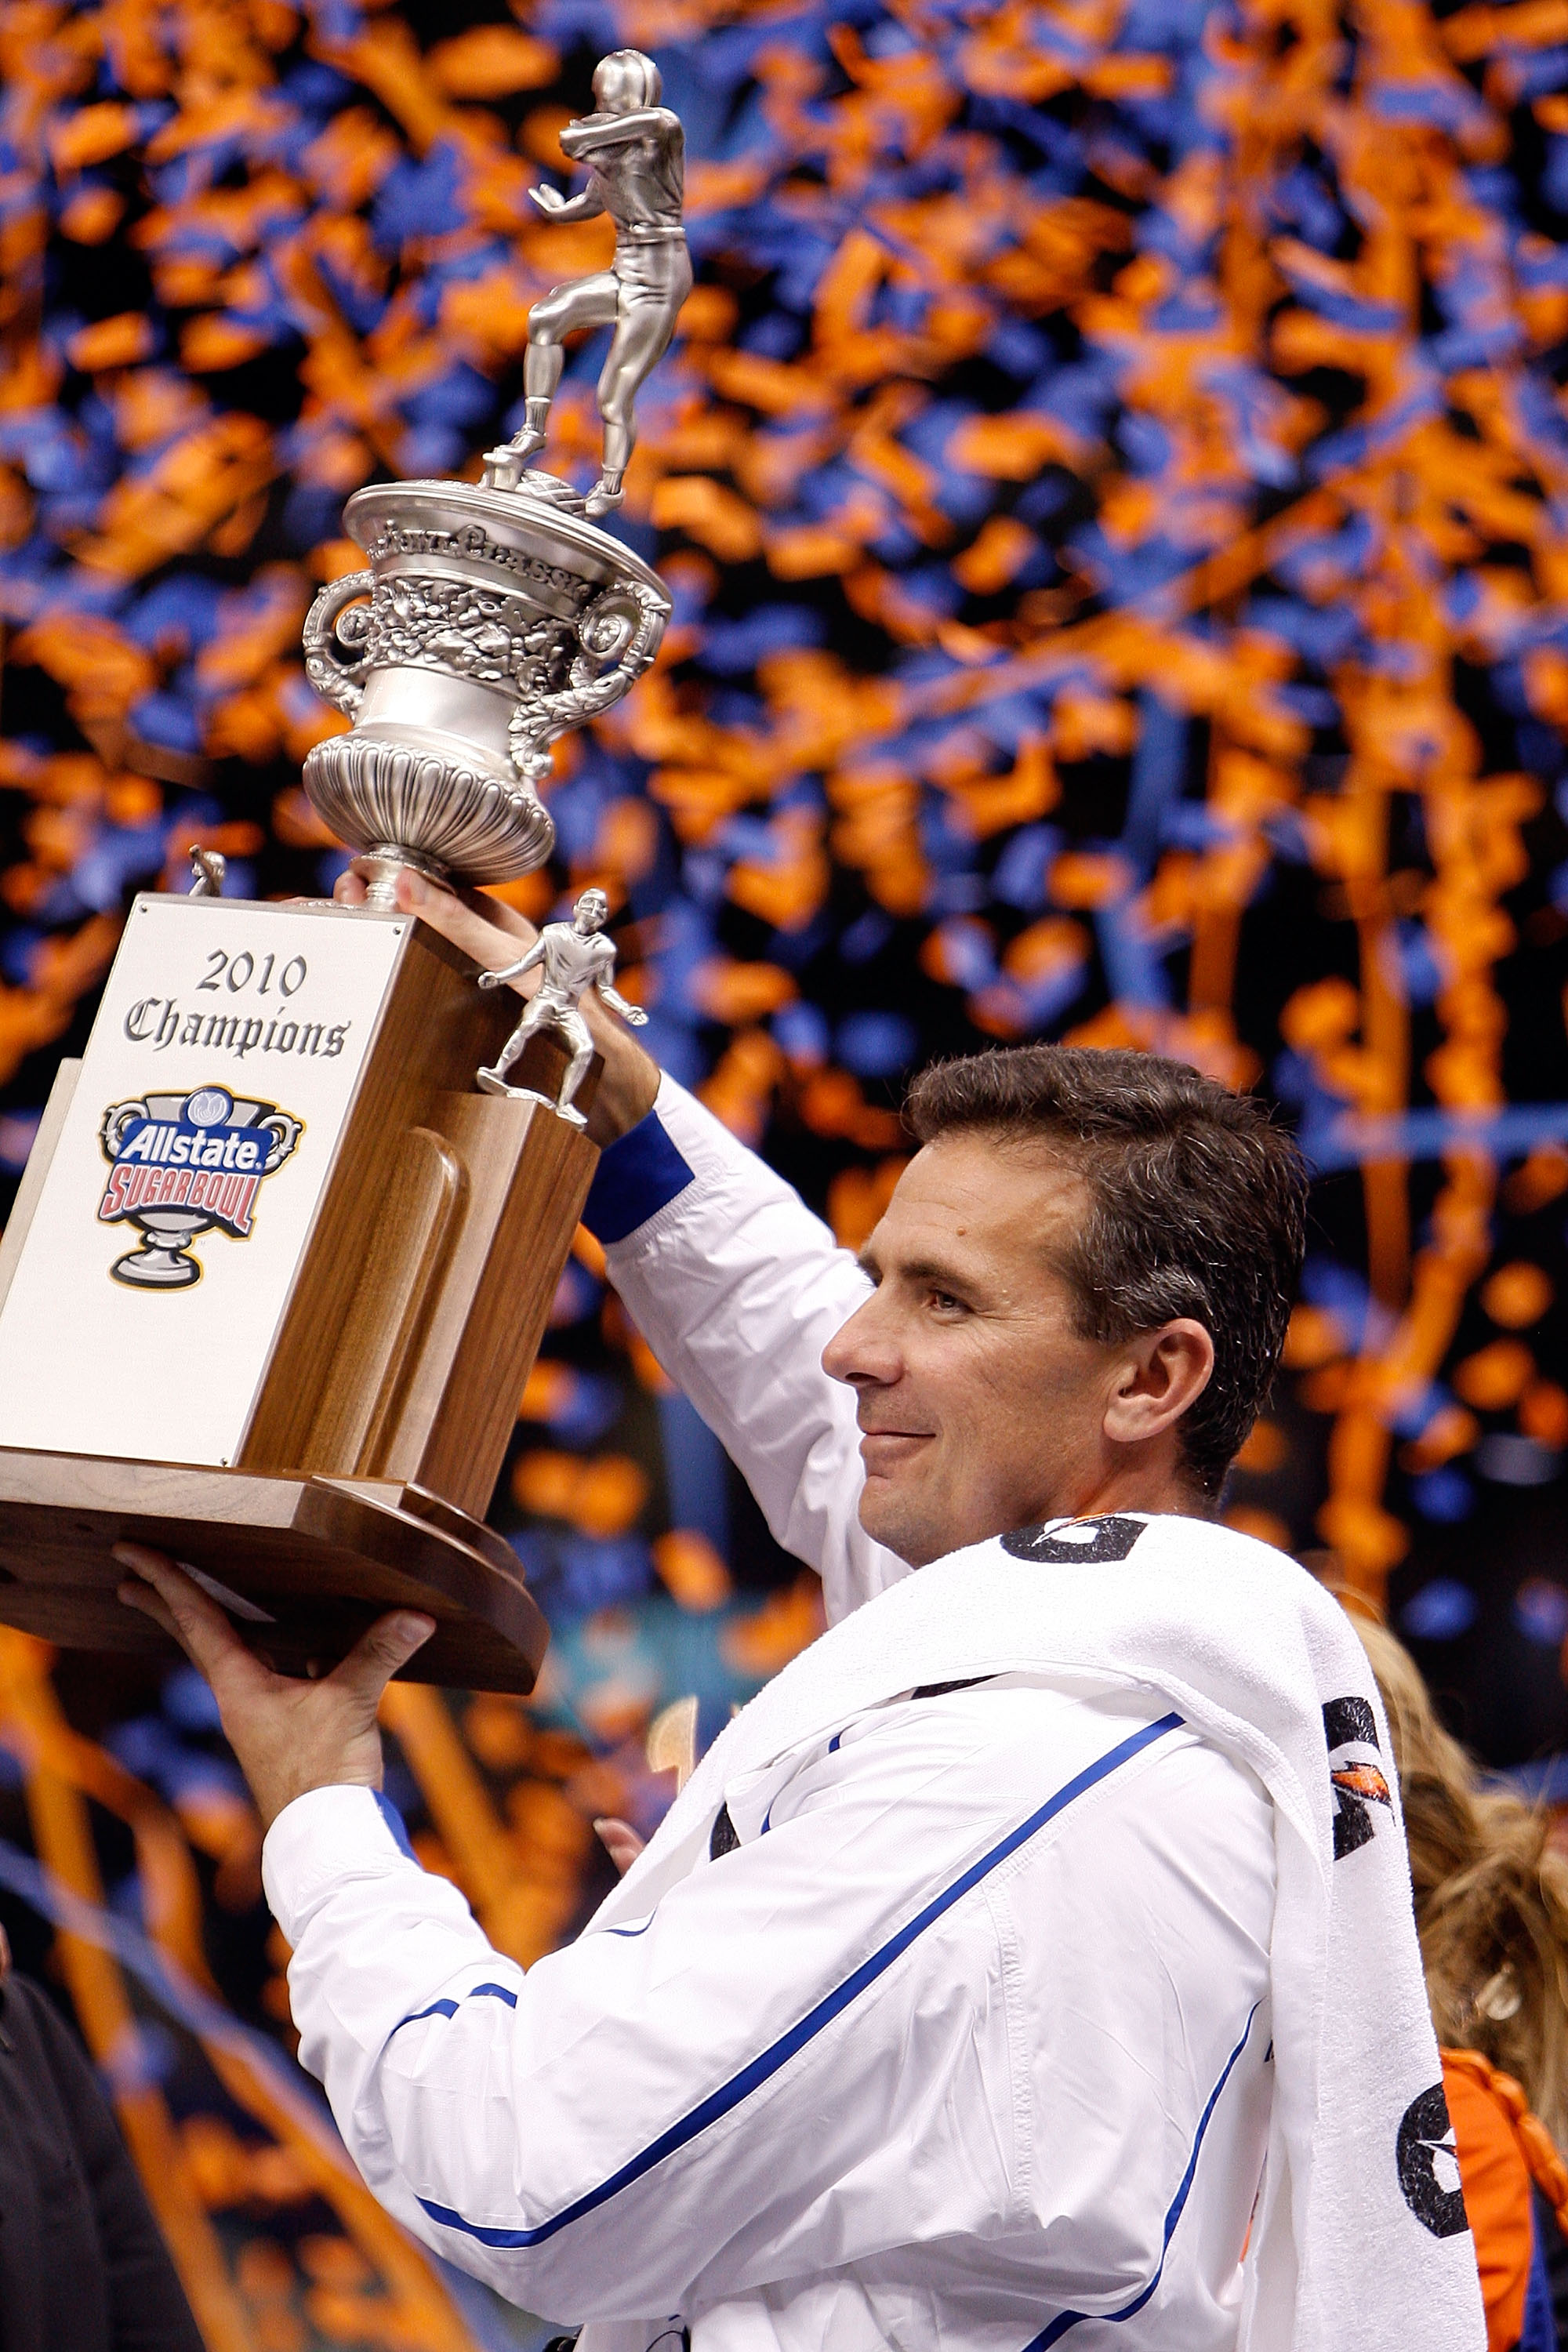 NEW ORLEANS - JANUARY 01:  Head coach Urban Meyer of the Florida Gators hoist the trophy after the Gators defeated the Bearcats 24-51 in the Allstate Sugar Bowl at the Louisana Superdome on January 1, 2010 in New Orleans, Louisiana.  (Photo by Chris Grayt